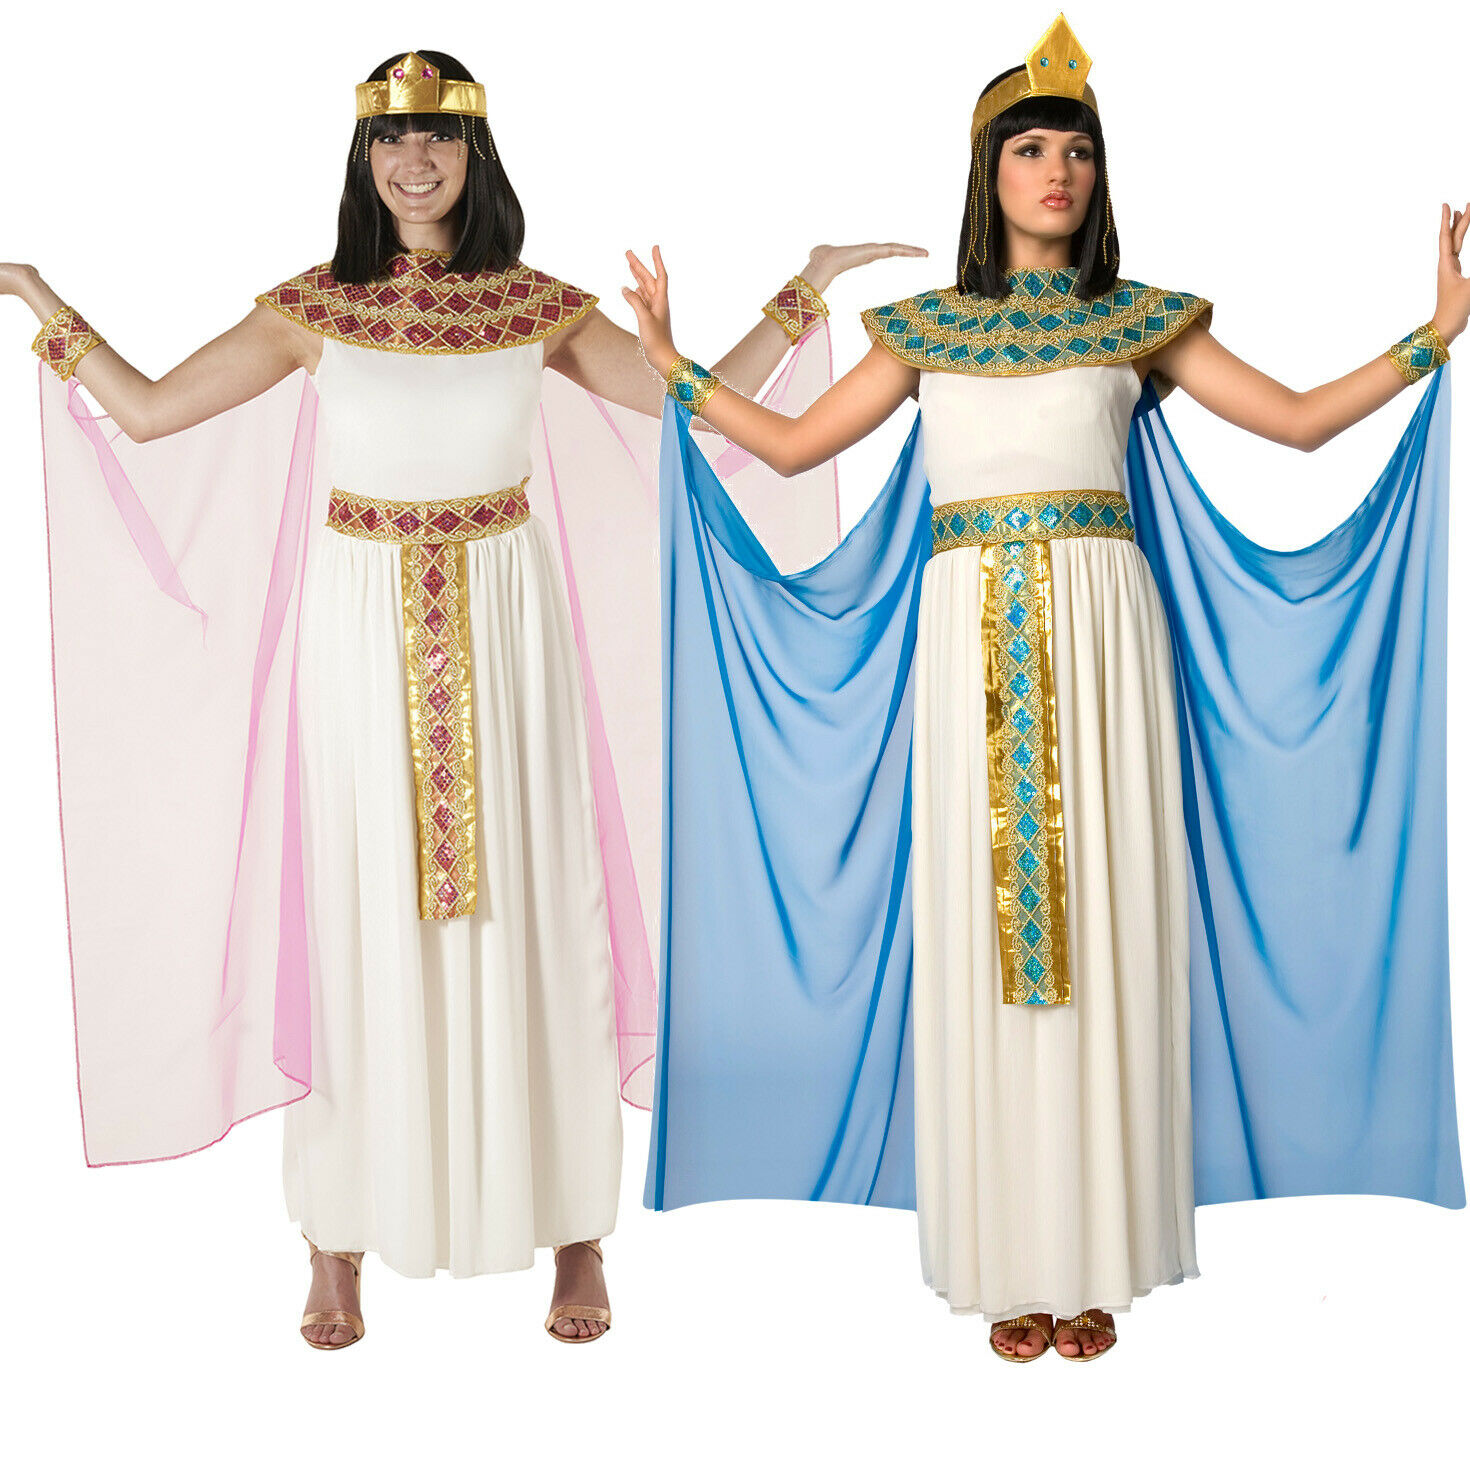 Cleopatra Queen of Egypt Nile Black Egyptian Goddess Women Costume